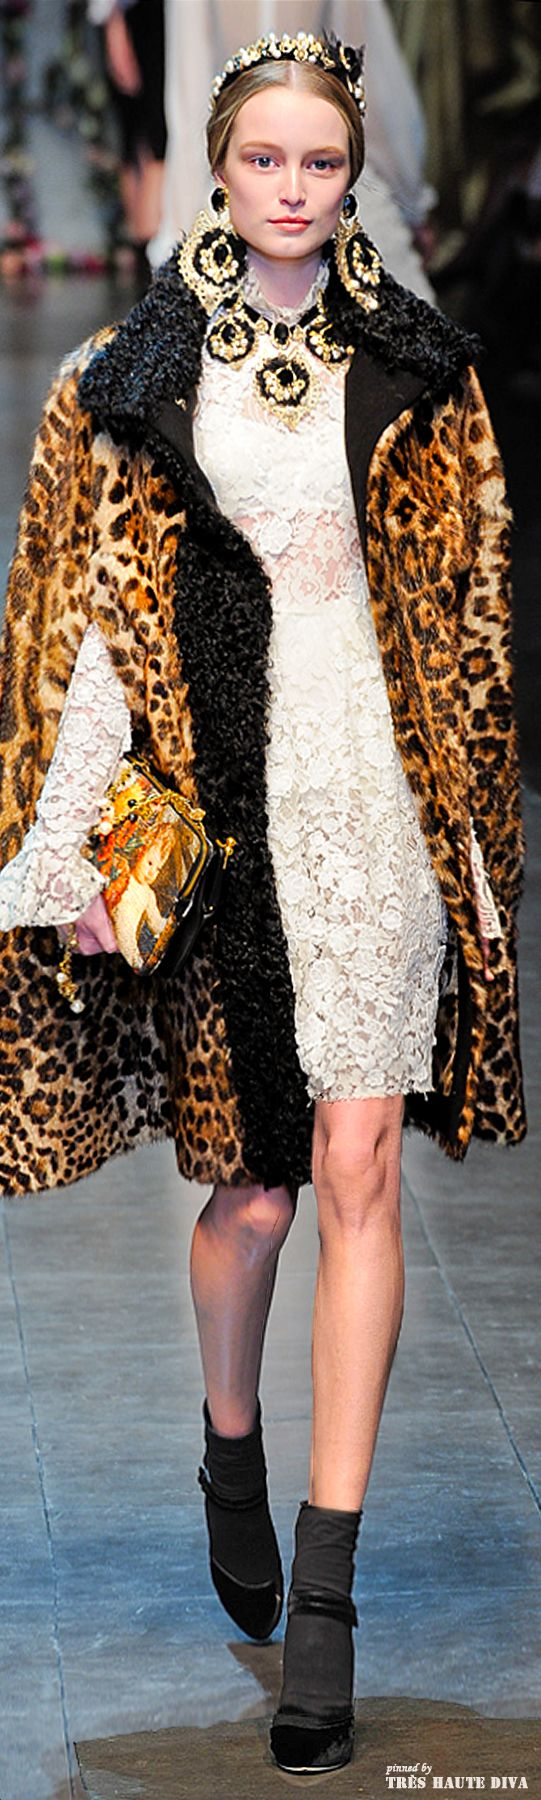 21 best Wear Something Gaudy Day images on Pinterest